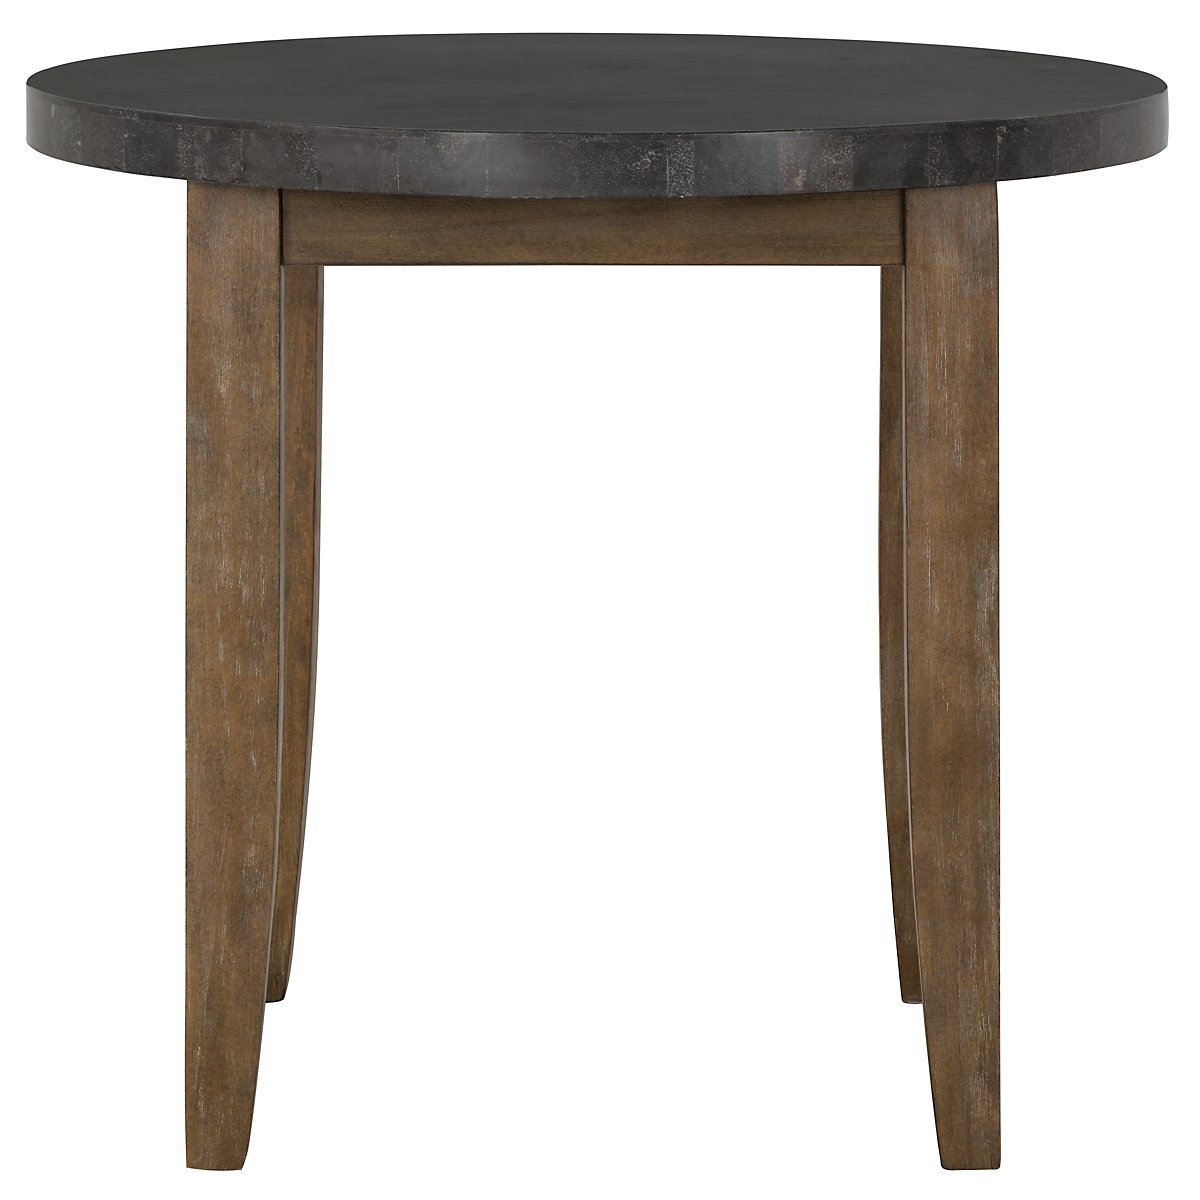 City furniture emmett stone round high dining table for Stone dining table